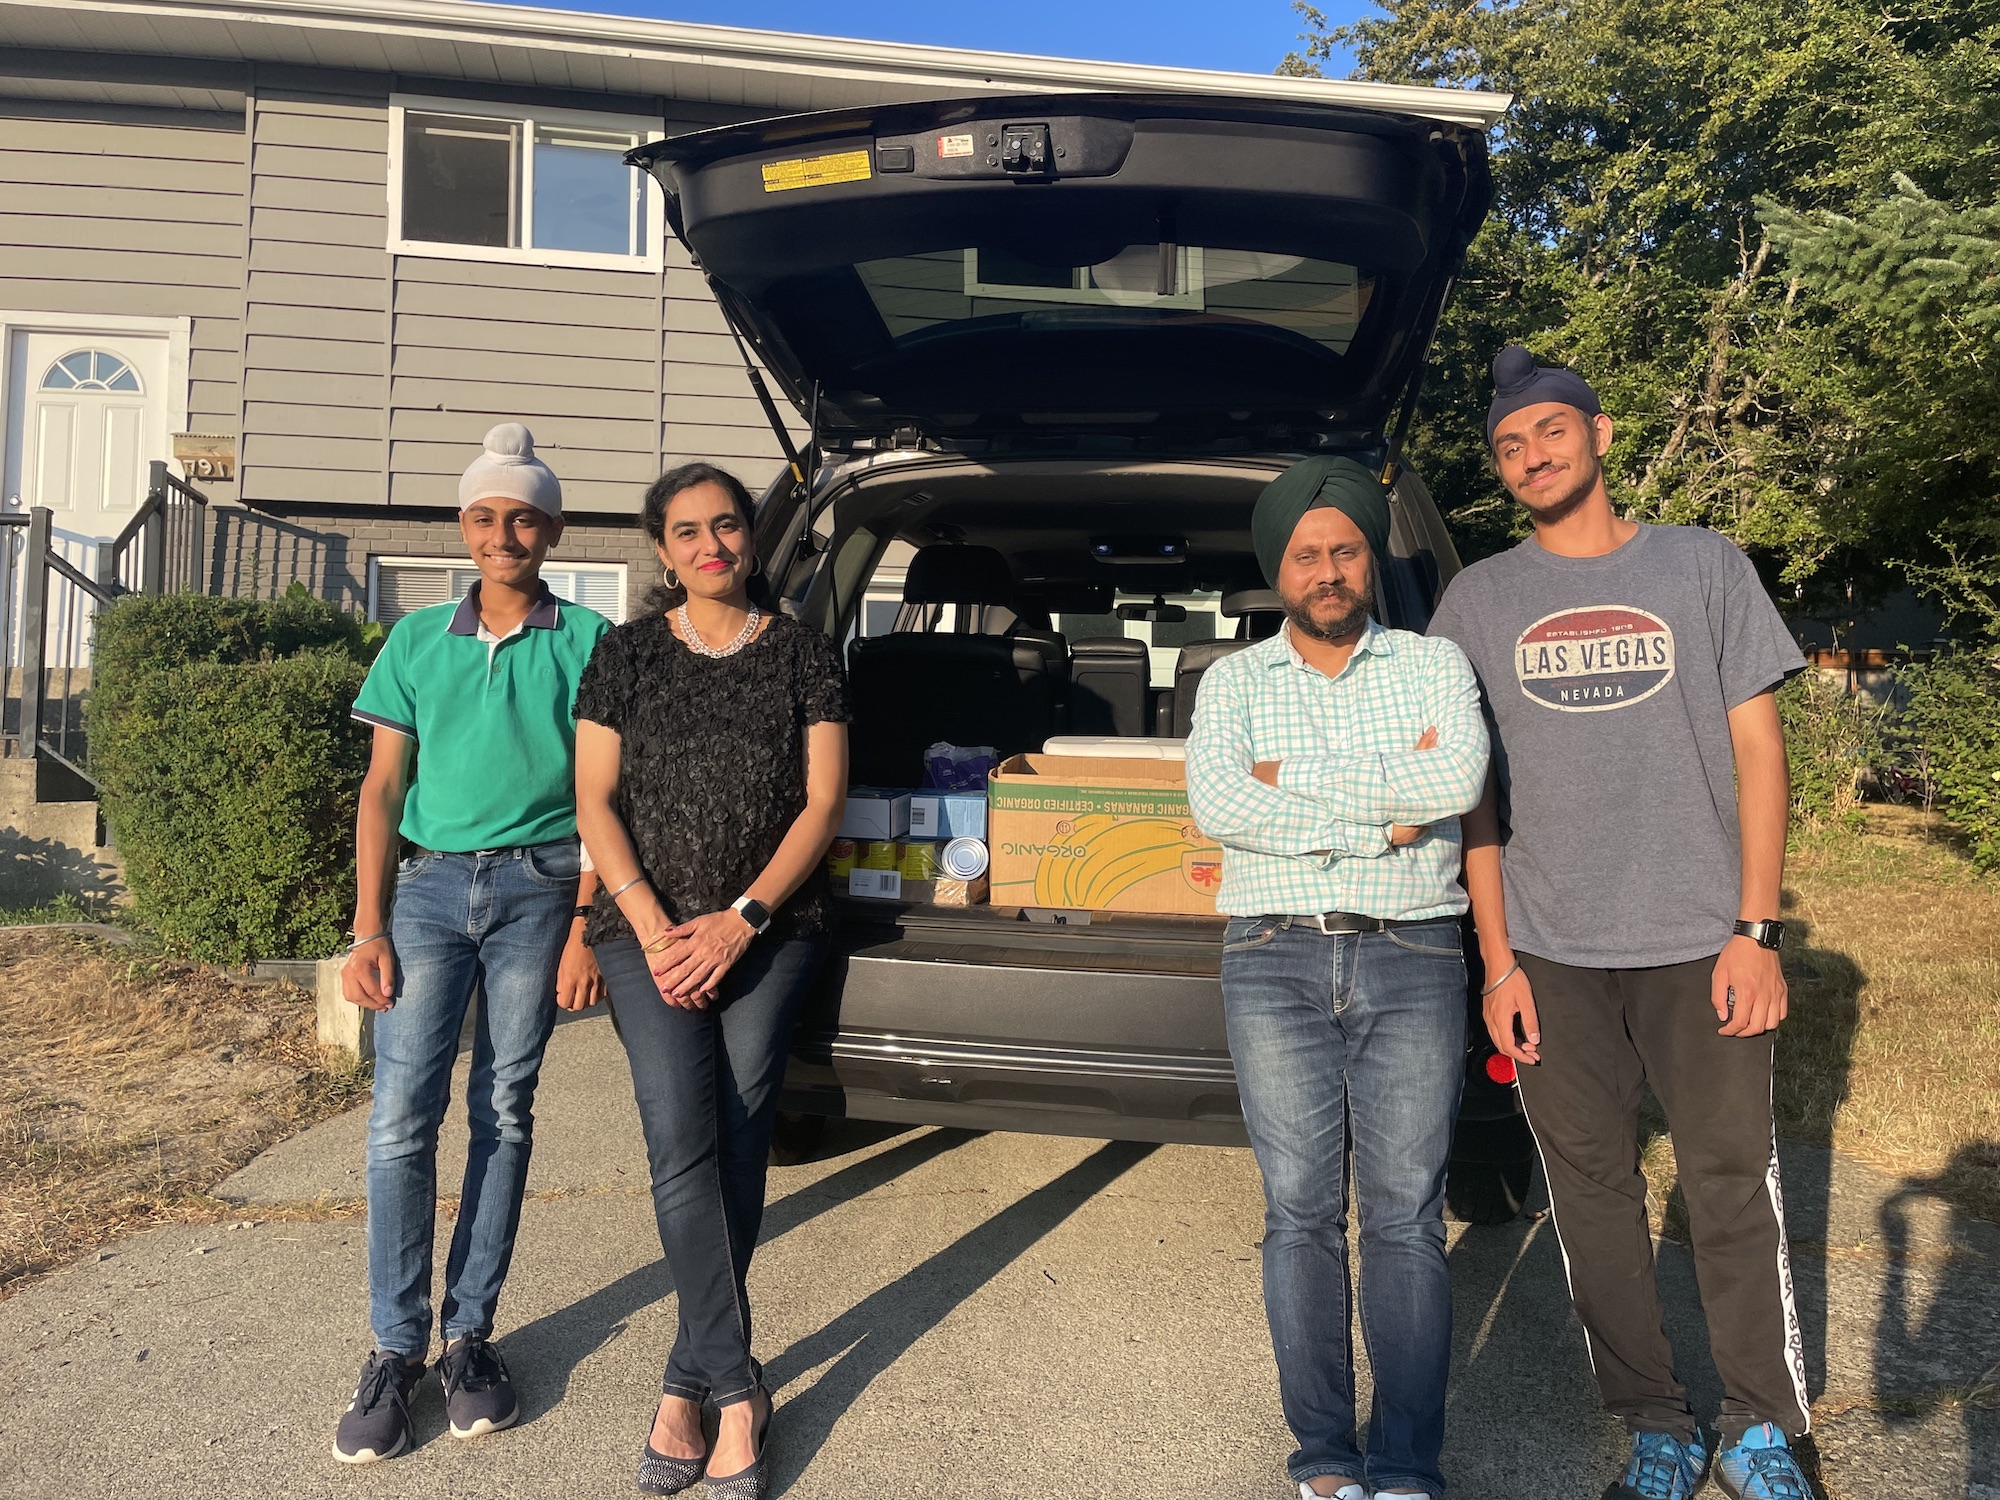 Family-run charity Fateh Care brings free access to food, medical care, and more to hundreds of Vancouver Island residents